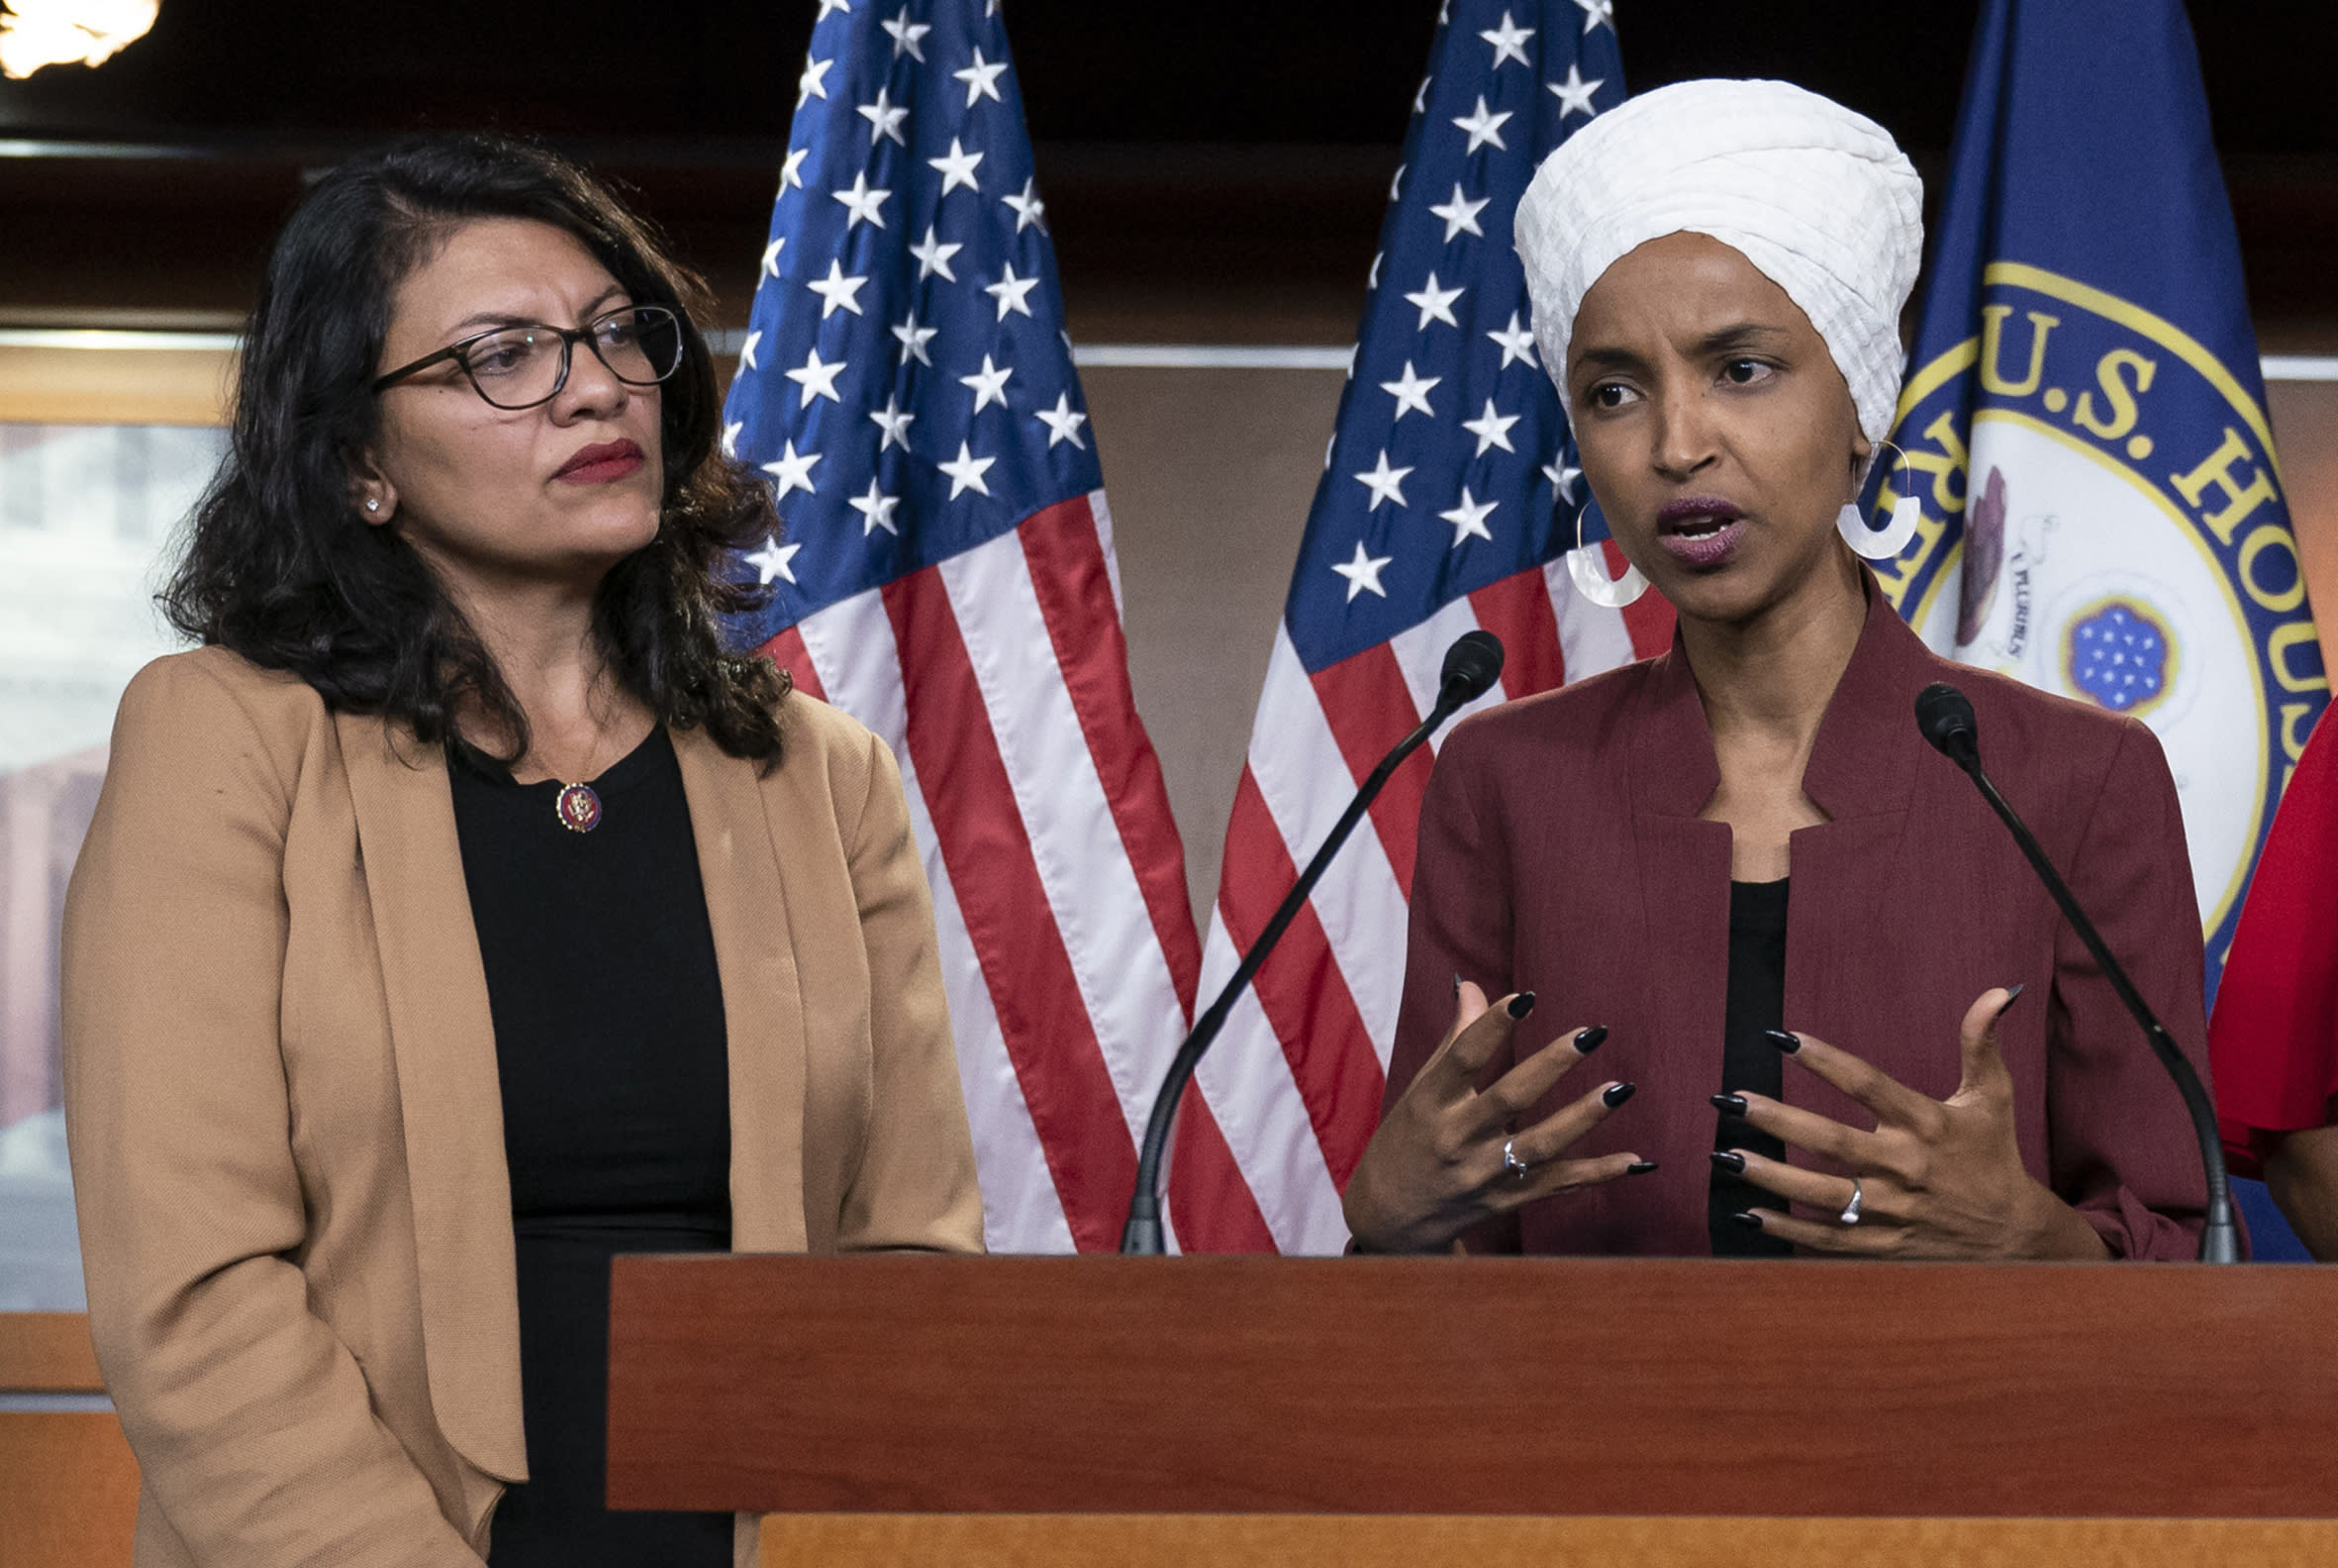 FILE - In this July 15, 2019, file photo, U.S. Rep. Ilhan Omar, D-Minn, right, speaks, as U.S. Rep. Rashida Tlaib, D-Mich. listens, during a news conference at the Capitol in Washington. In the eyes of critics, Benjamin Netanyahu's decision to bar two Democratic congresswomen at the request of President Donald Trump is the latest reckless gamble by a prime minister willing to sacrifice Israel's national interests for short-term gain. And yet the pursuit of such allegedly short-term gains has kept Netanyahu in power for more than a decade. (AP Photo/J. Scott Applewhite, File)